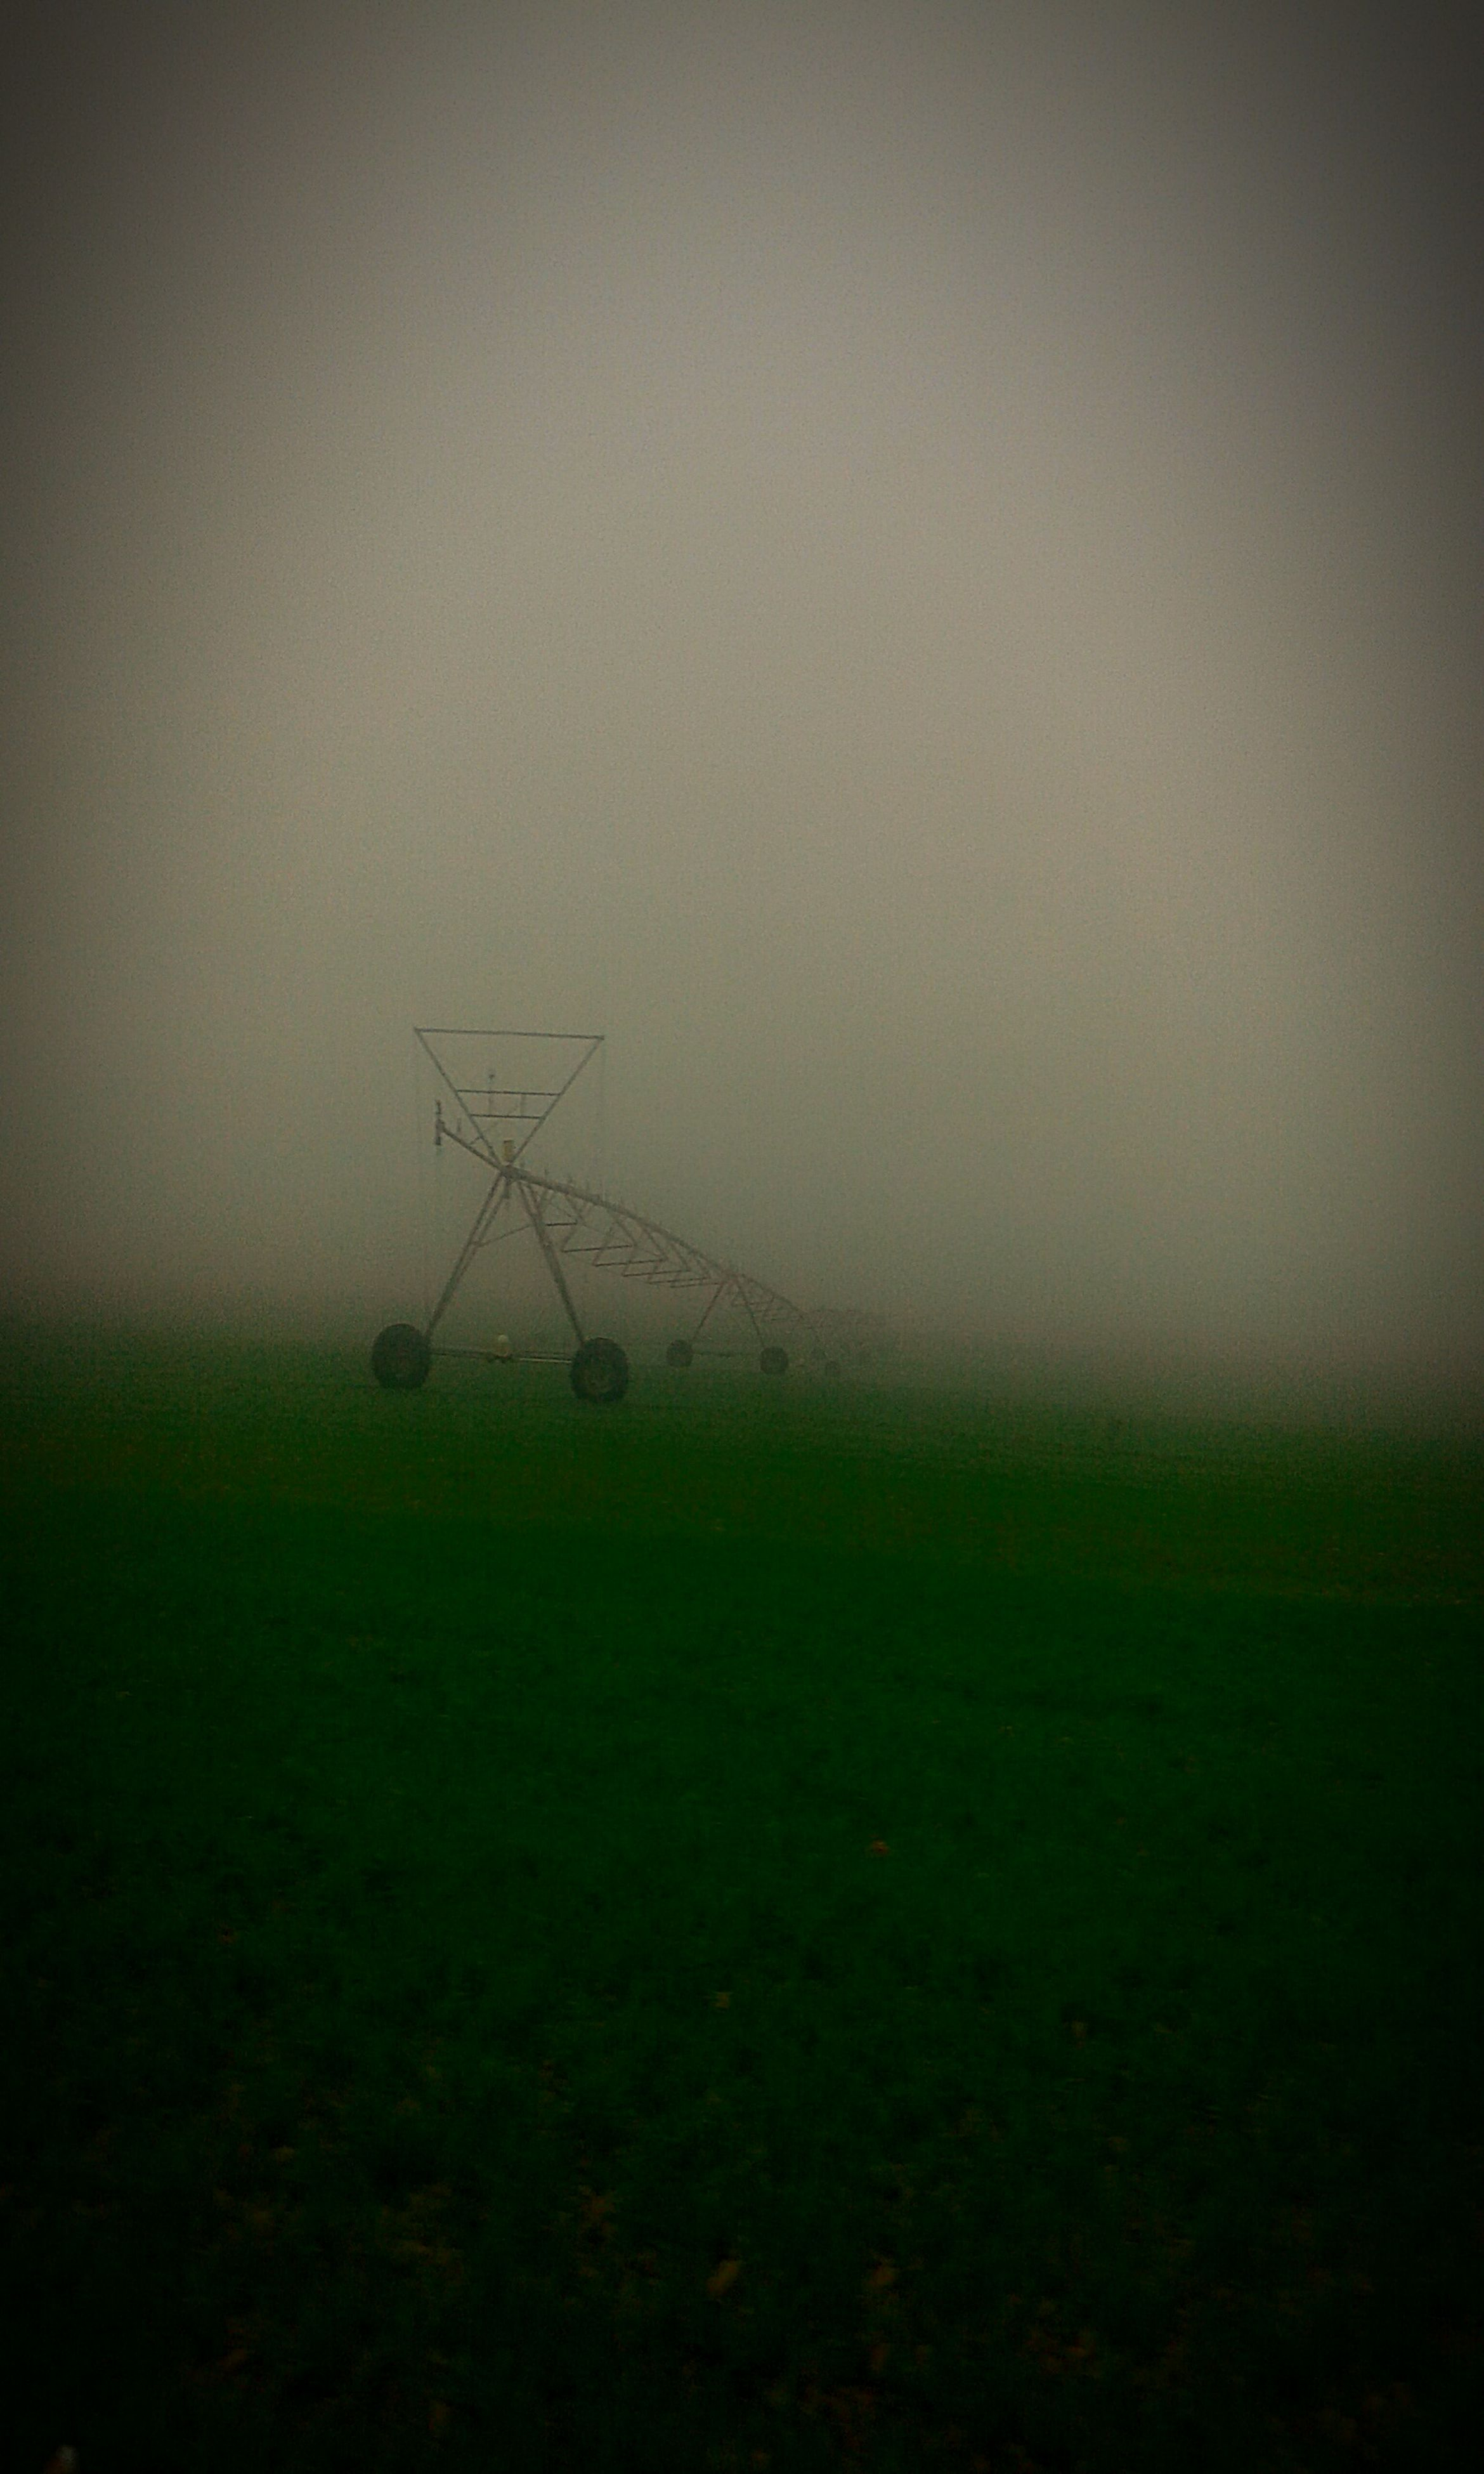 landscape, field, fog, fuel and power generation, copy space, foggy, nature, wind turbine, wind power, tranquility, tranquil scene, alternative energy, dusk, renewable energy, weather, beauty in nature, windmill, environmental conservation, scenics